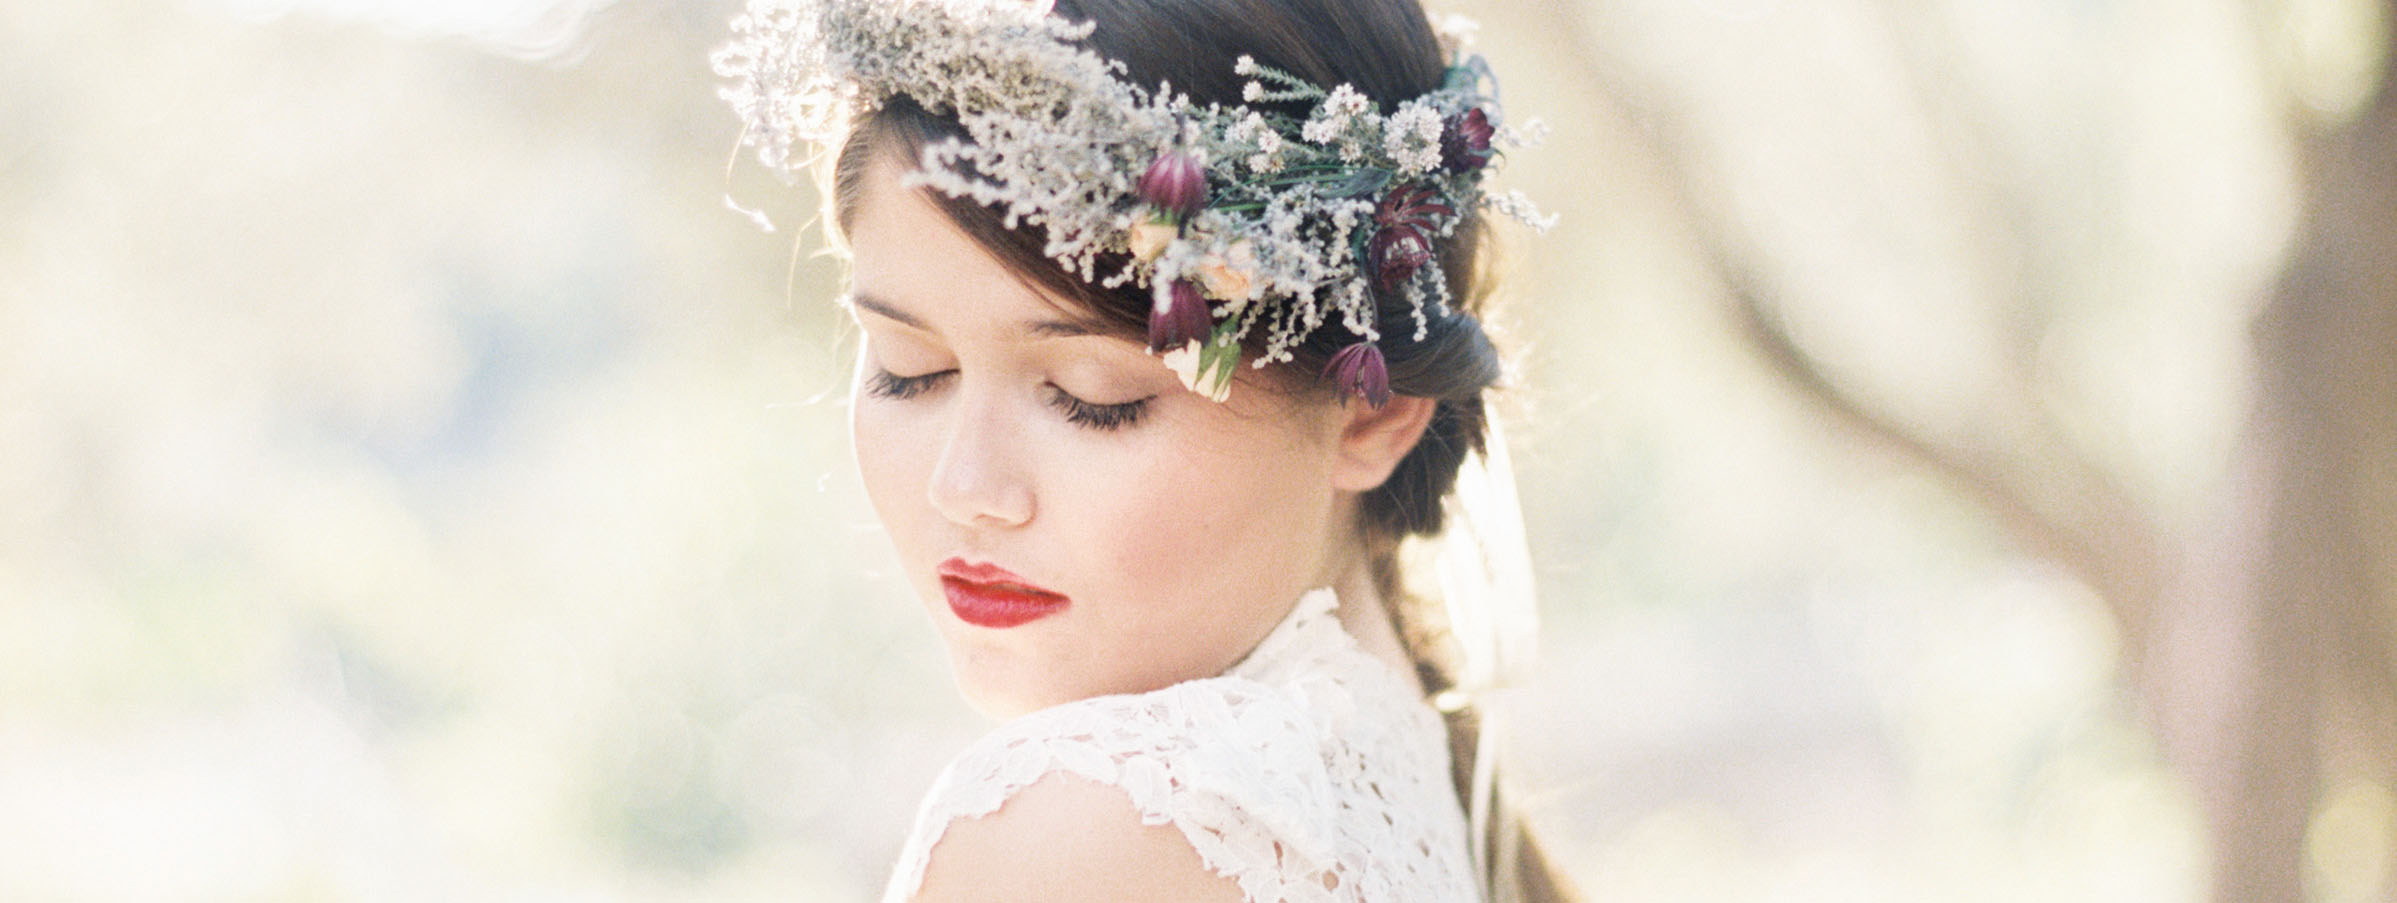 Bridal Inspirational Shoot for Hochzeitswahn - SIBO Designs Headpieces & Veils